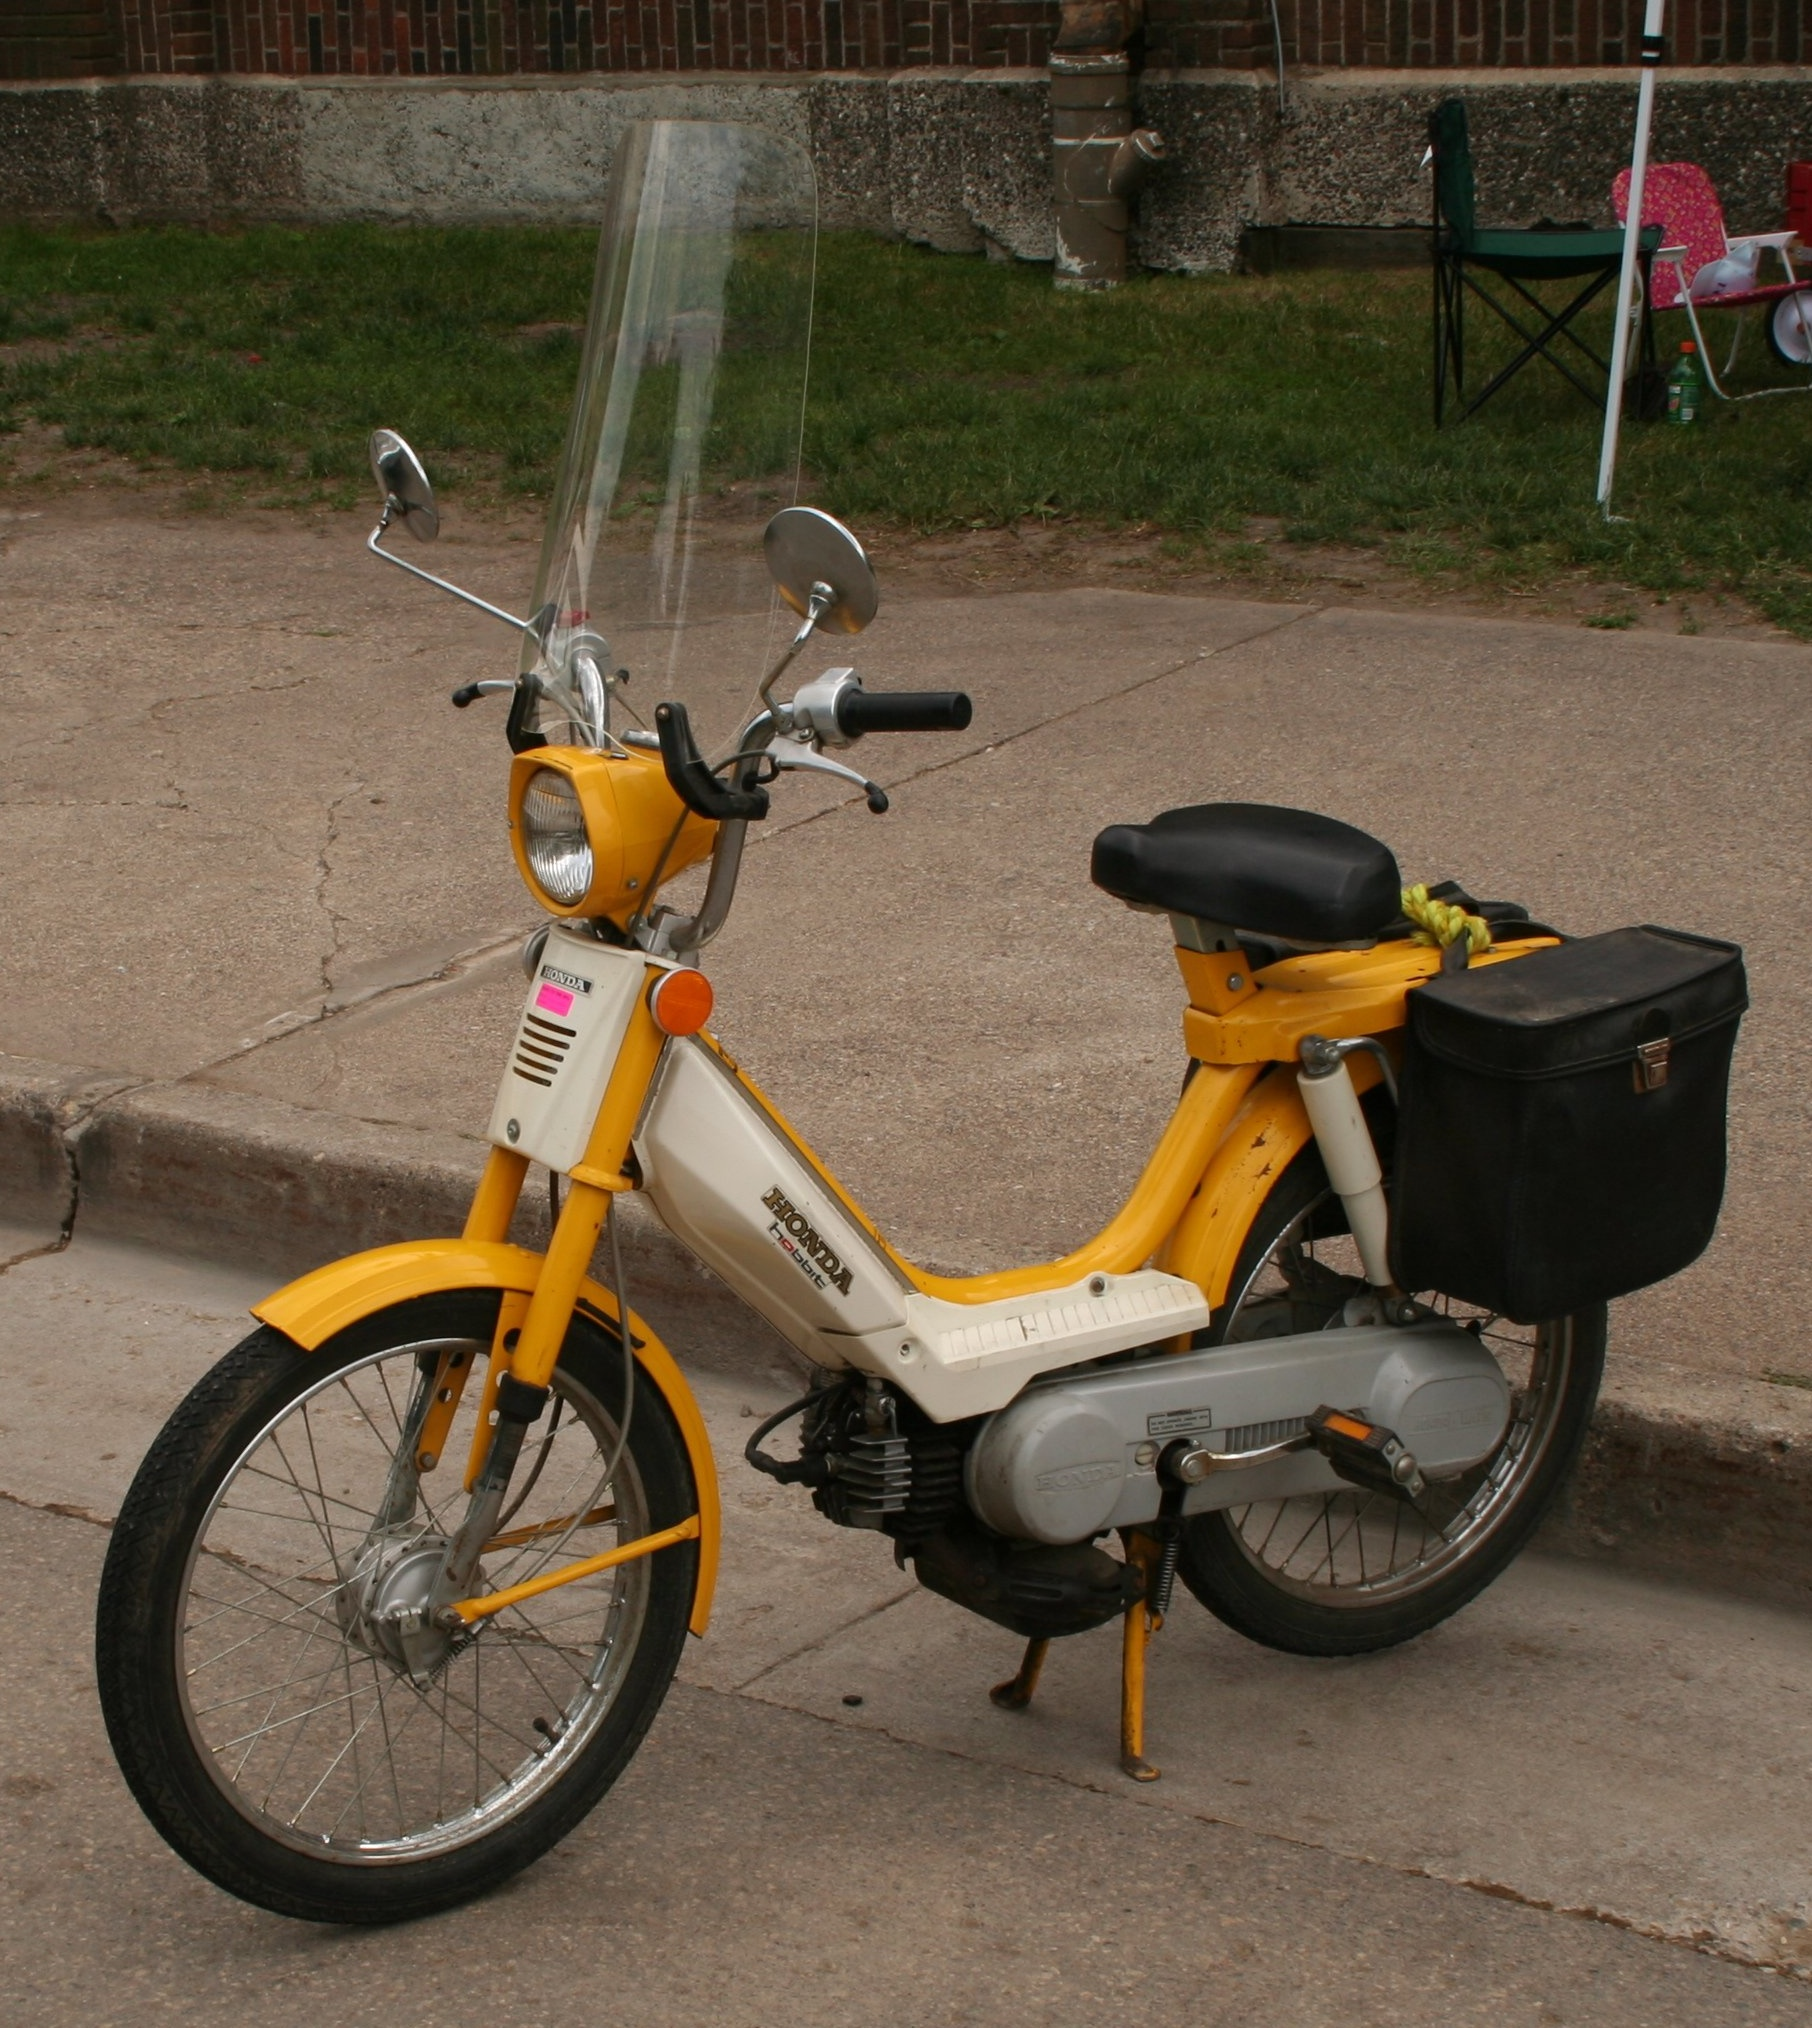 Moped - Wikipedia